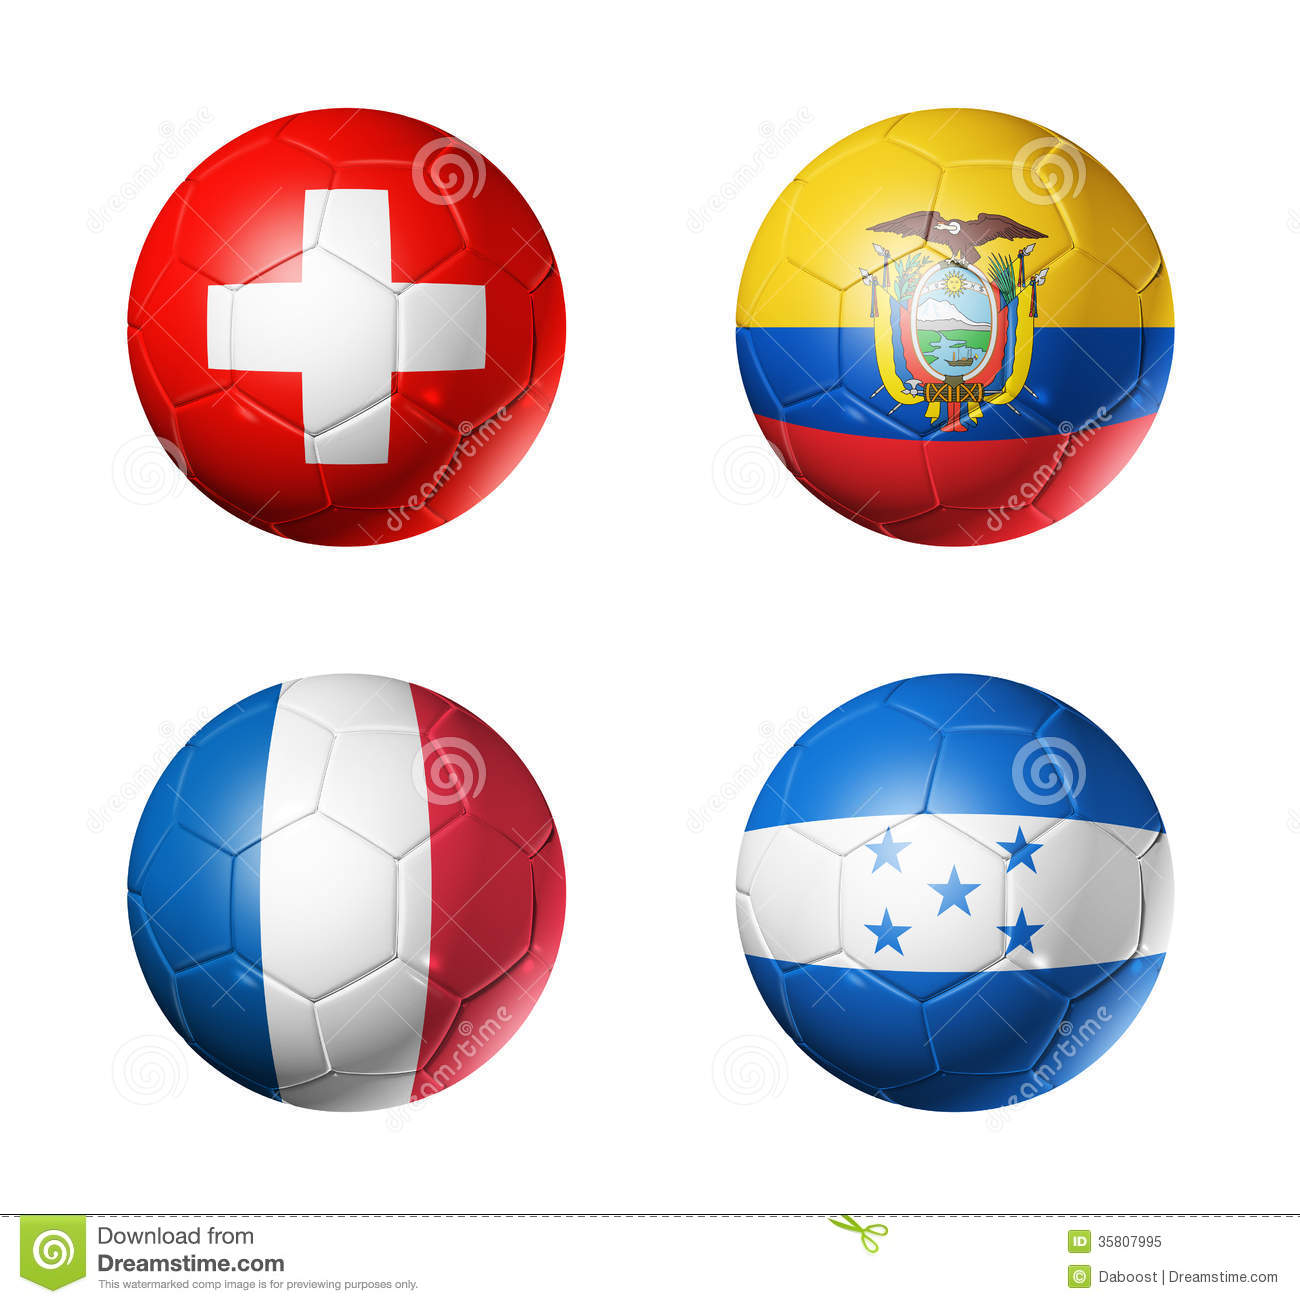 Coupe du monde du br sil drapeaux de 2014 groupes e sur le ballon de football photo libre de - Groupe france coupe du monde 2014 ...